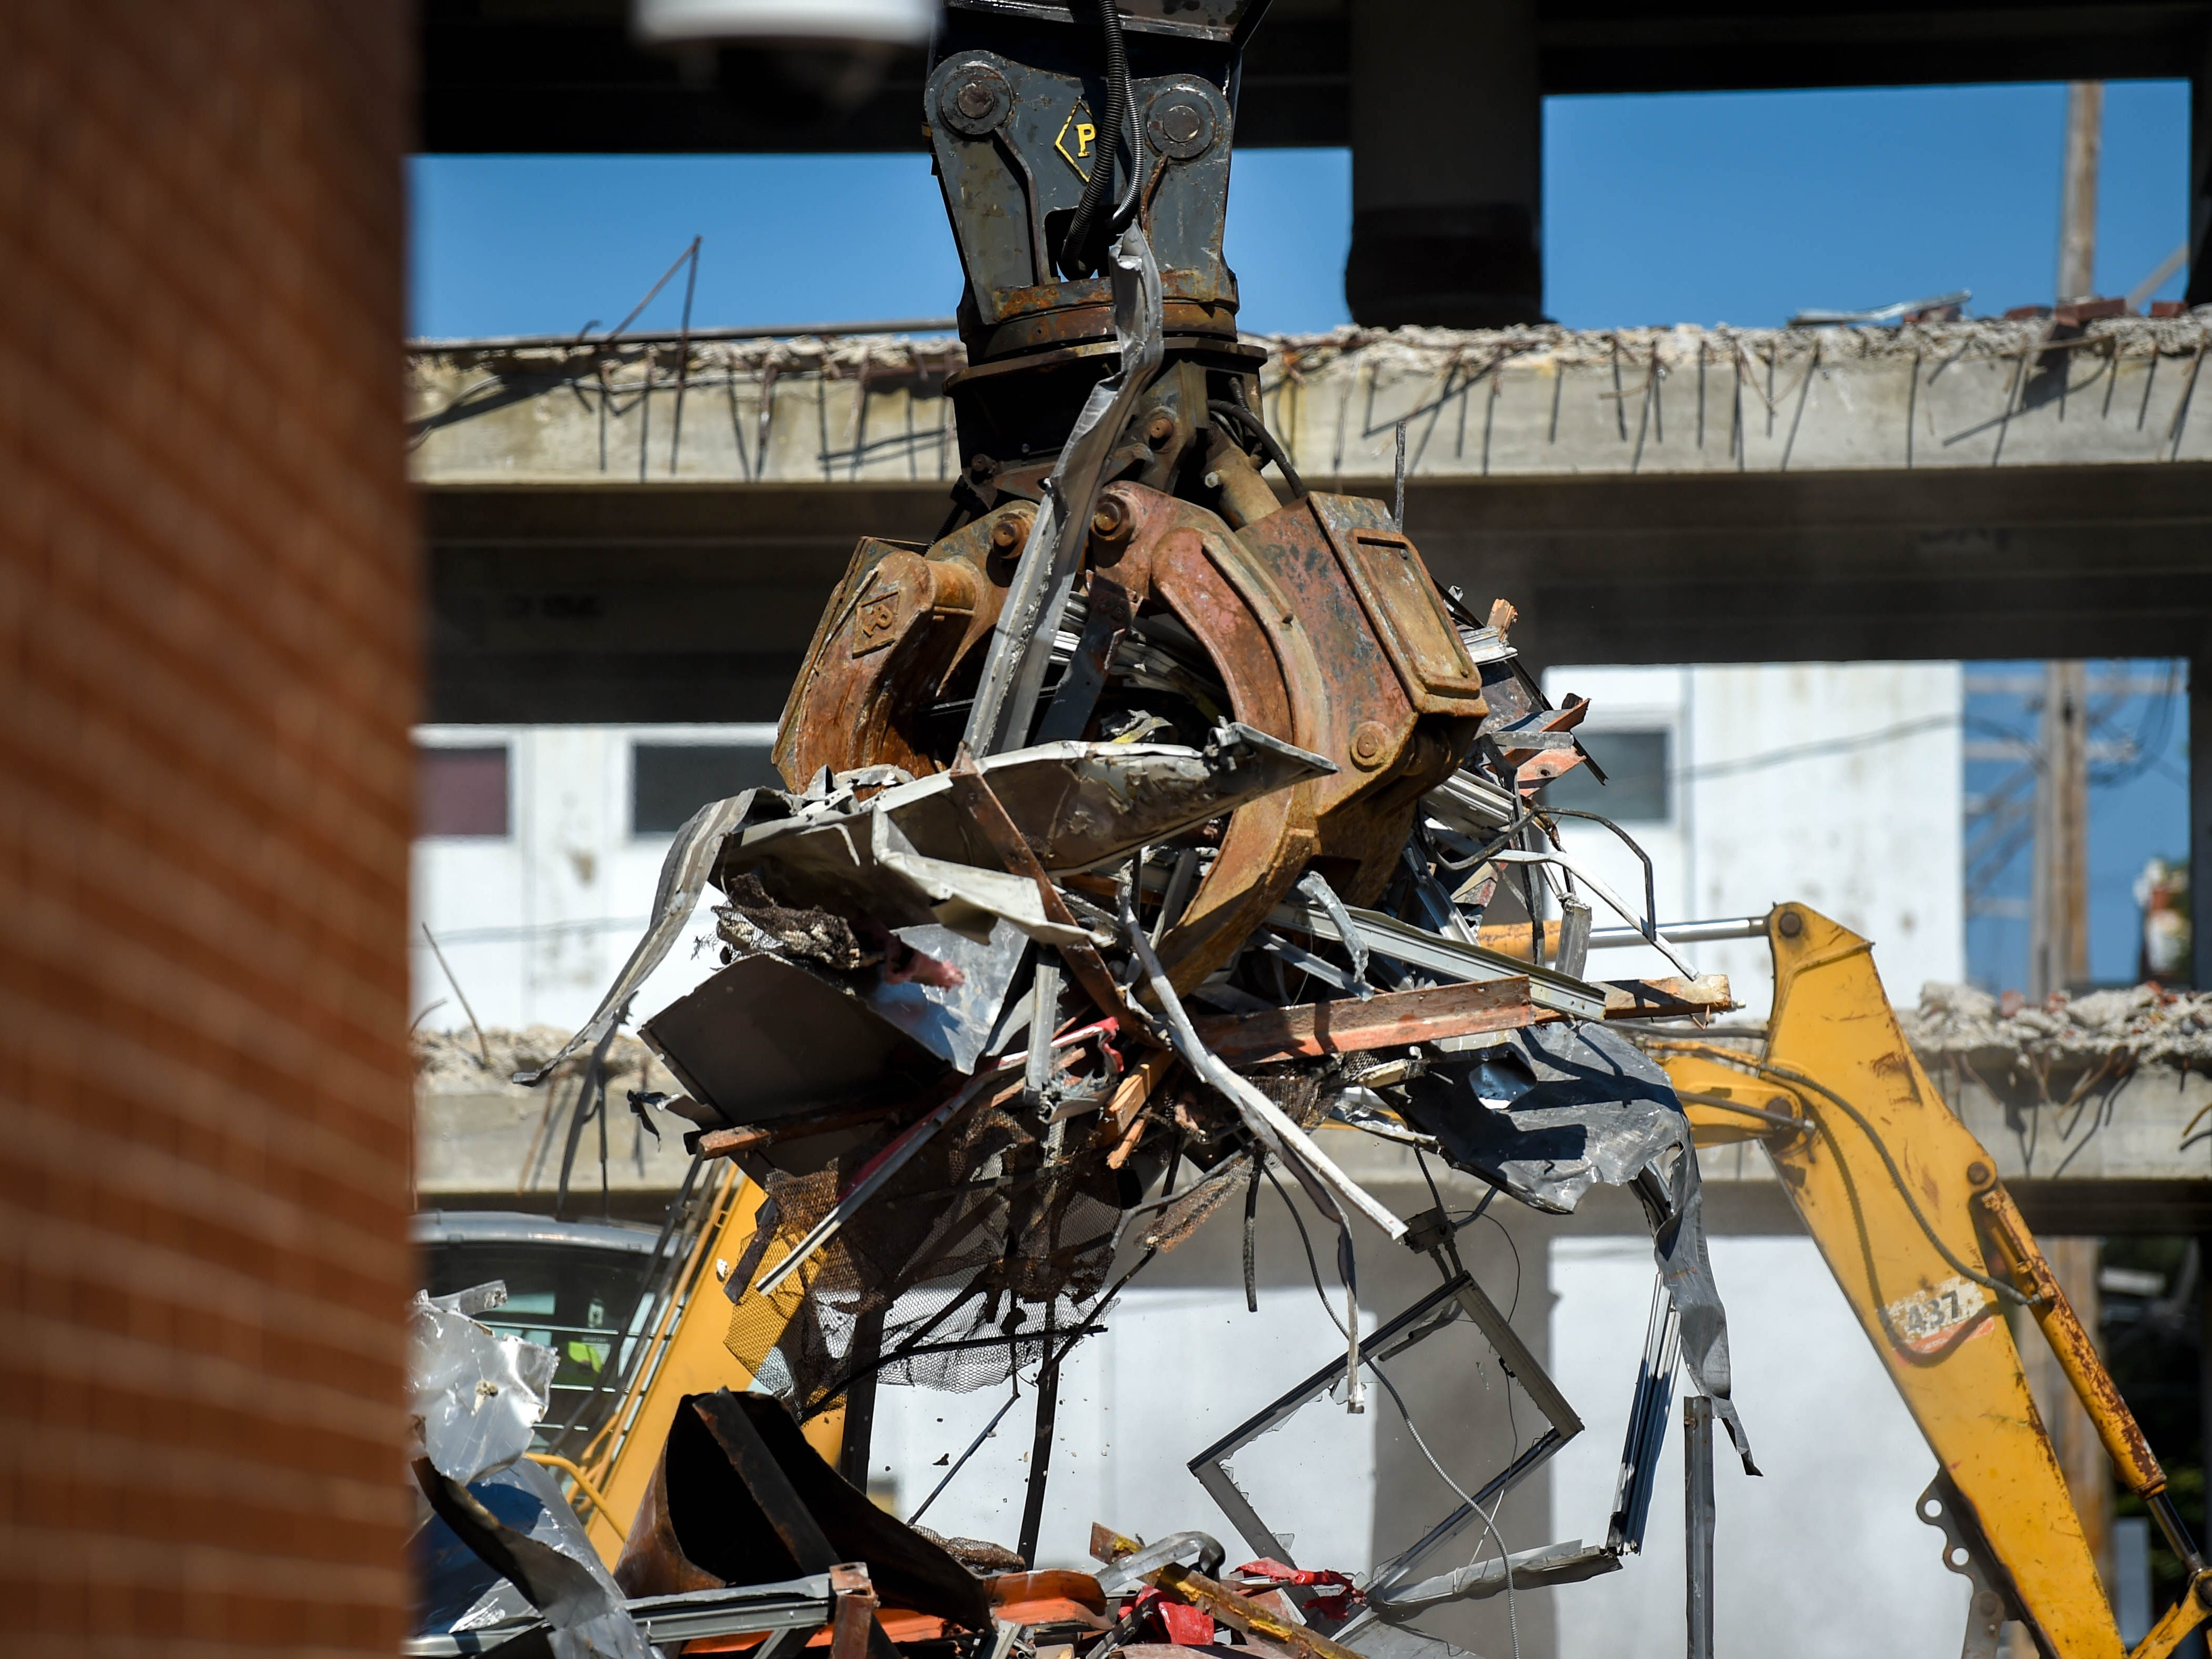 As the siding of the 1957 addition of the Yorktowne Hotel comes off, more debris is created on October 4, 2018.